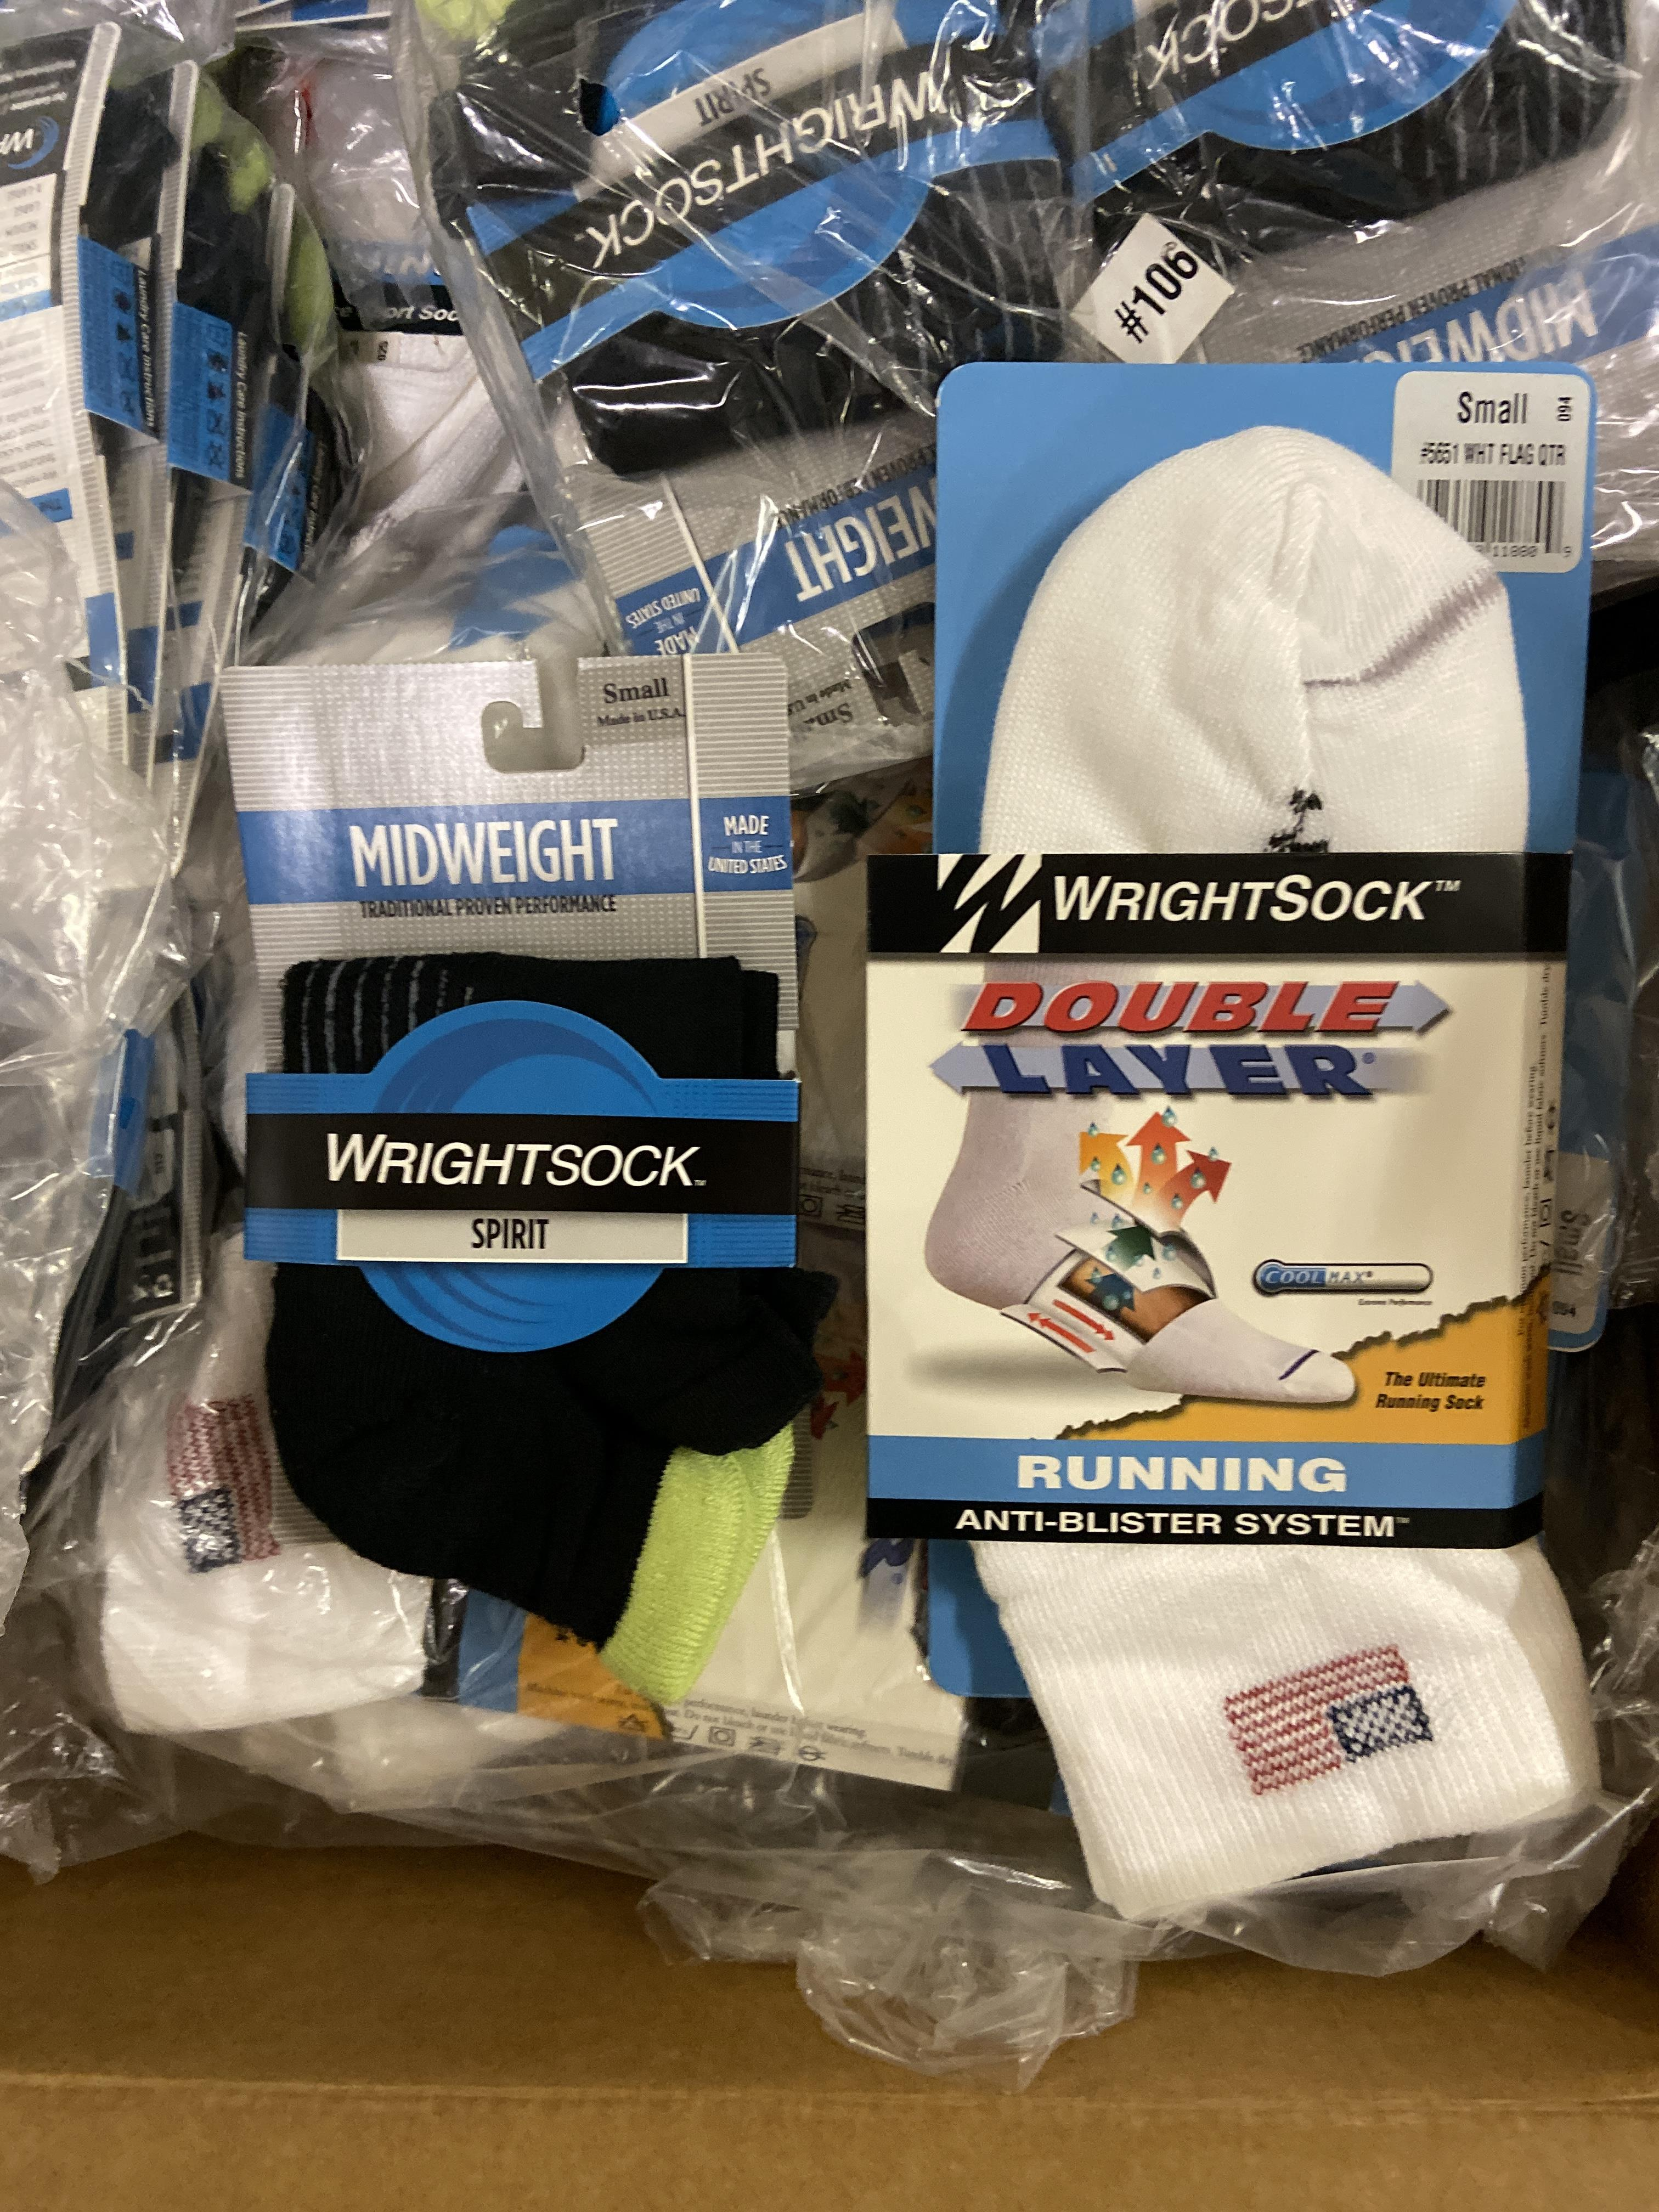 Lot 23 - 250+ packs of New Socks, Wrightsock Running and Midweight, Double Layer, White with USA Flag and